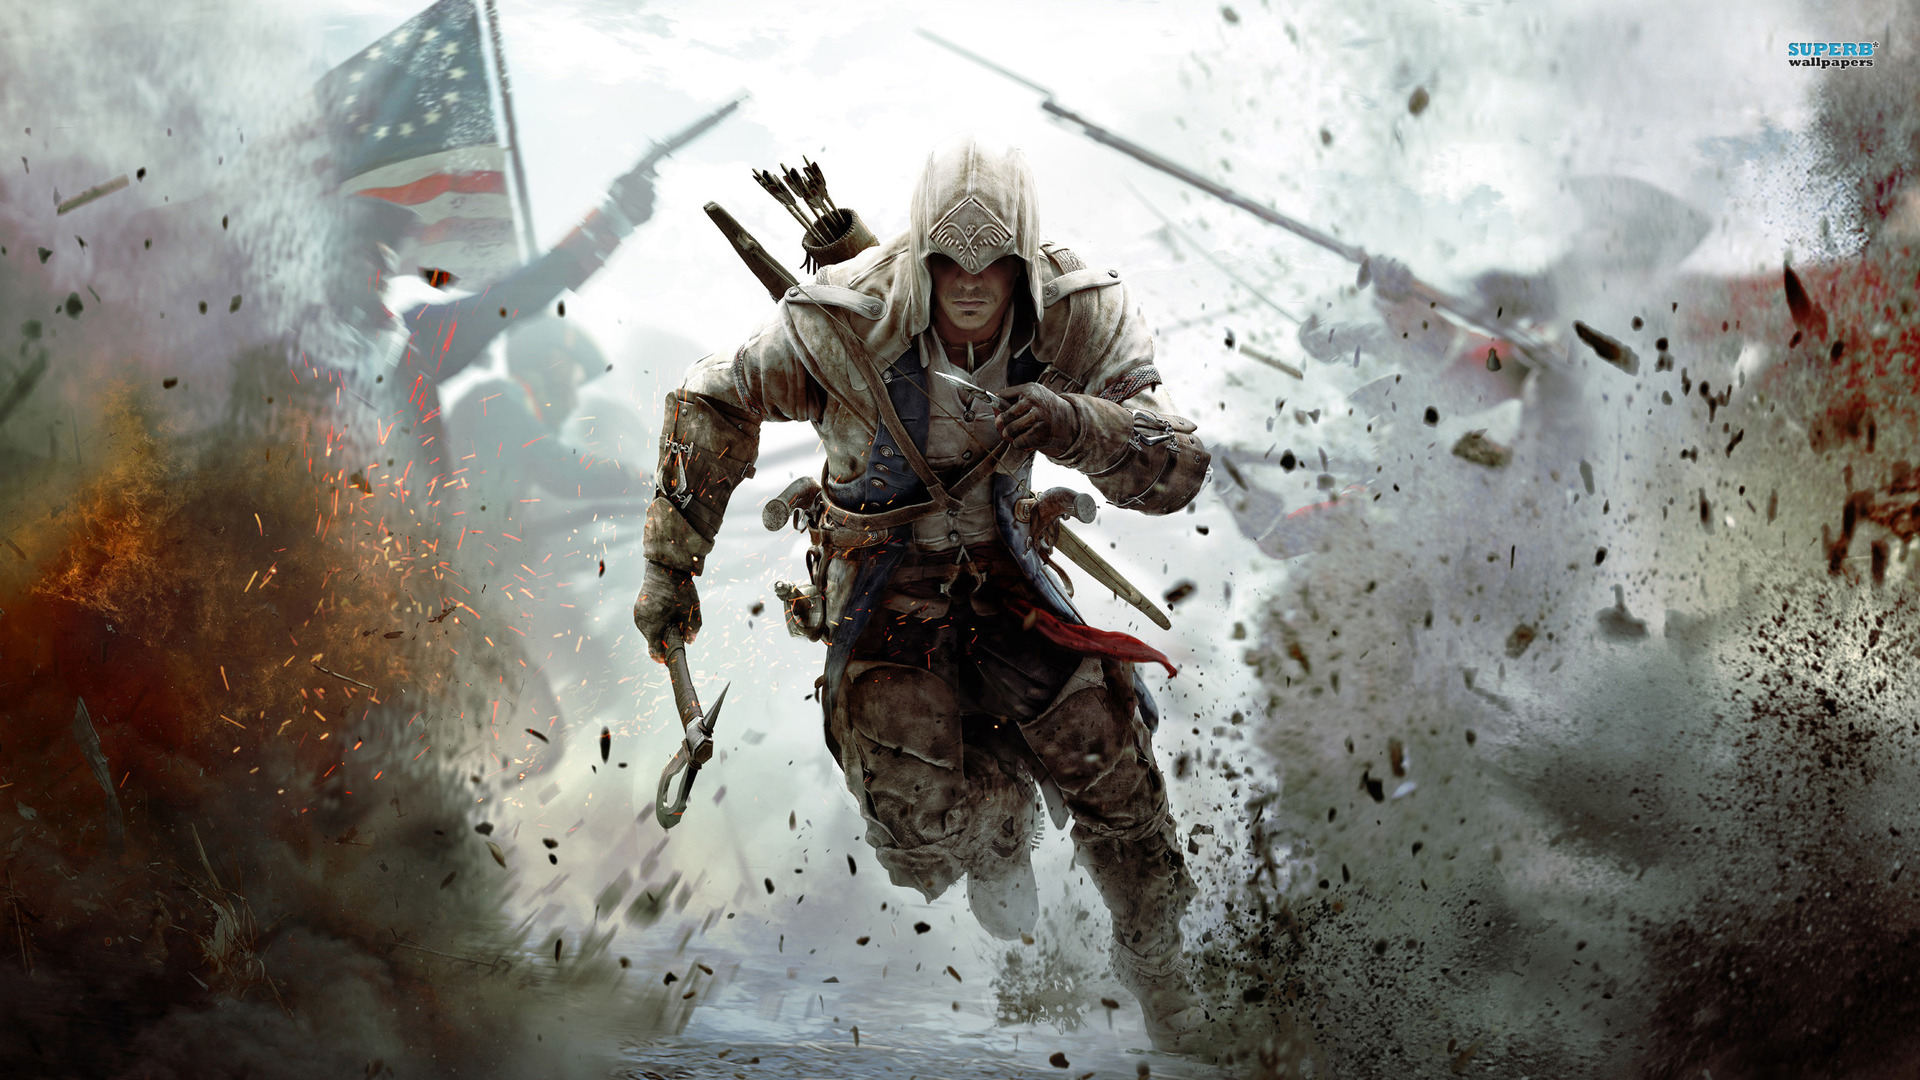 Assasin creed wallpaper hd Group (89+)